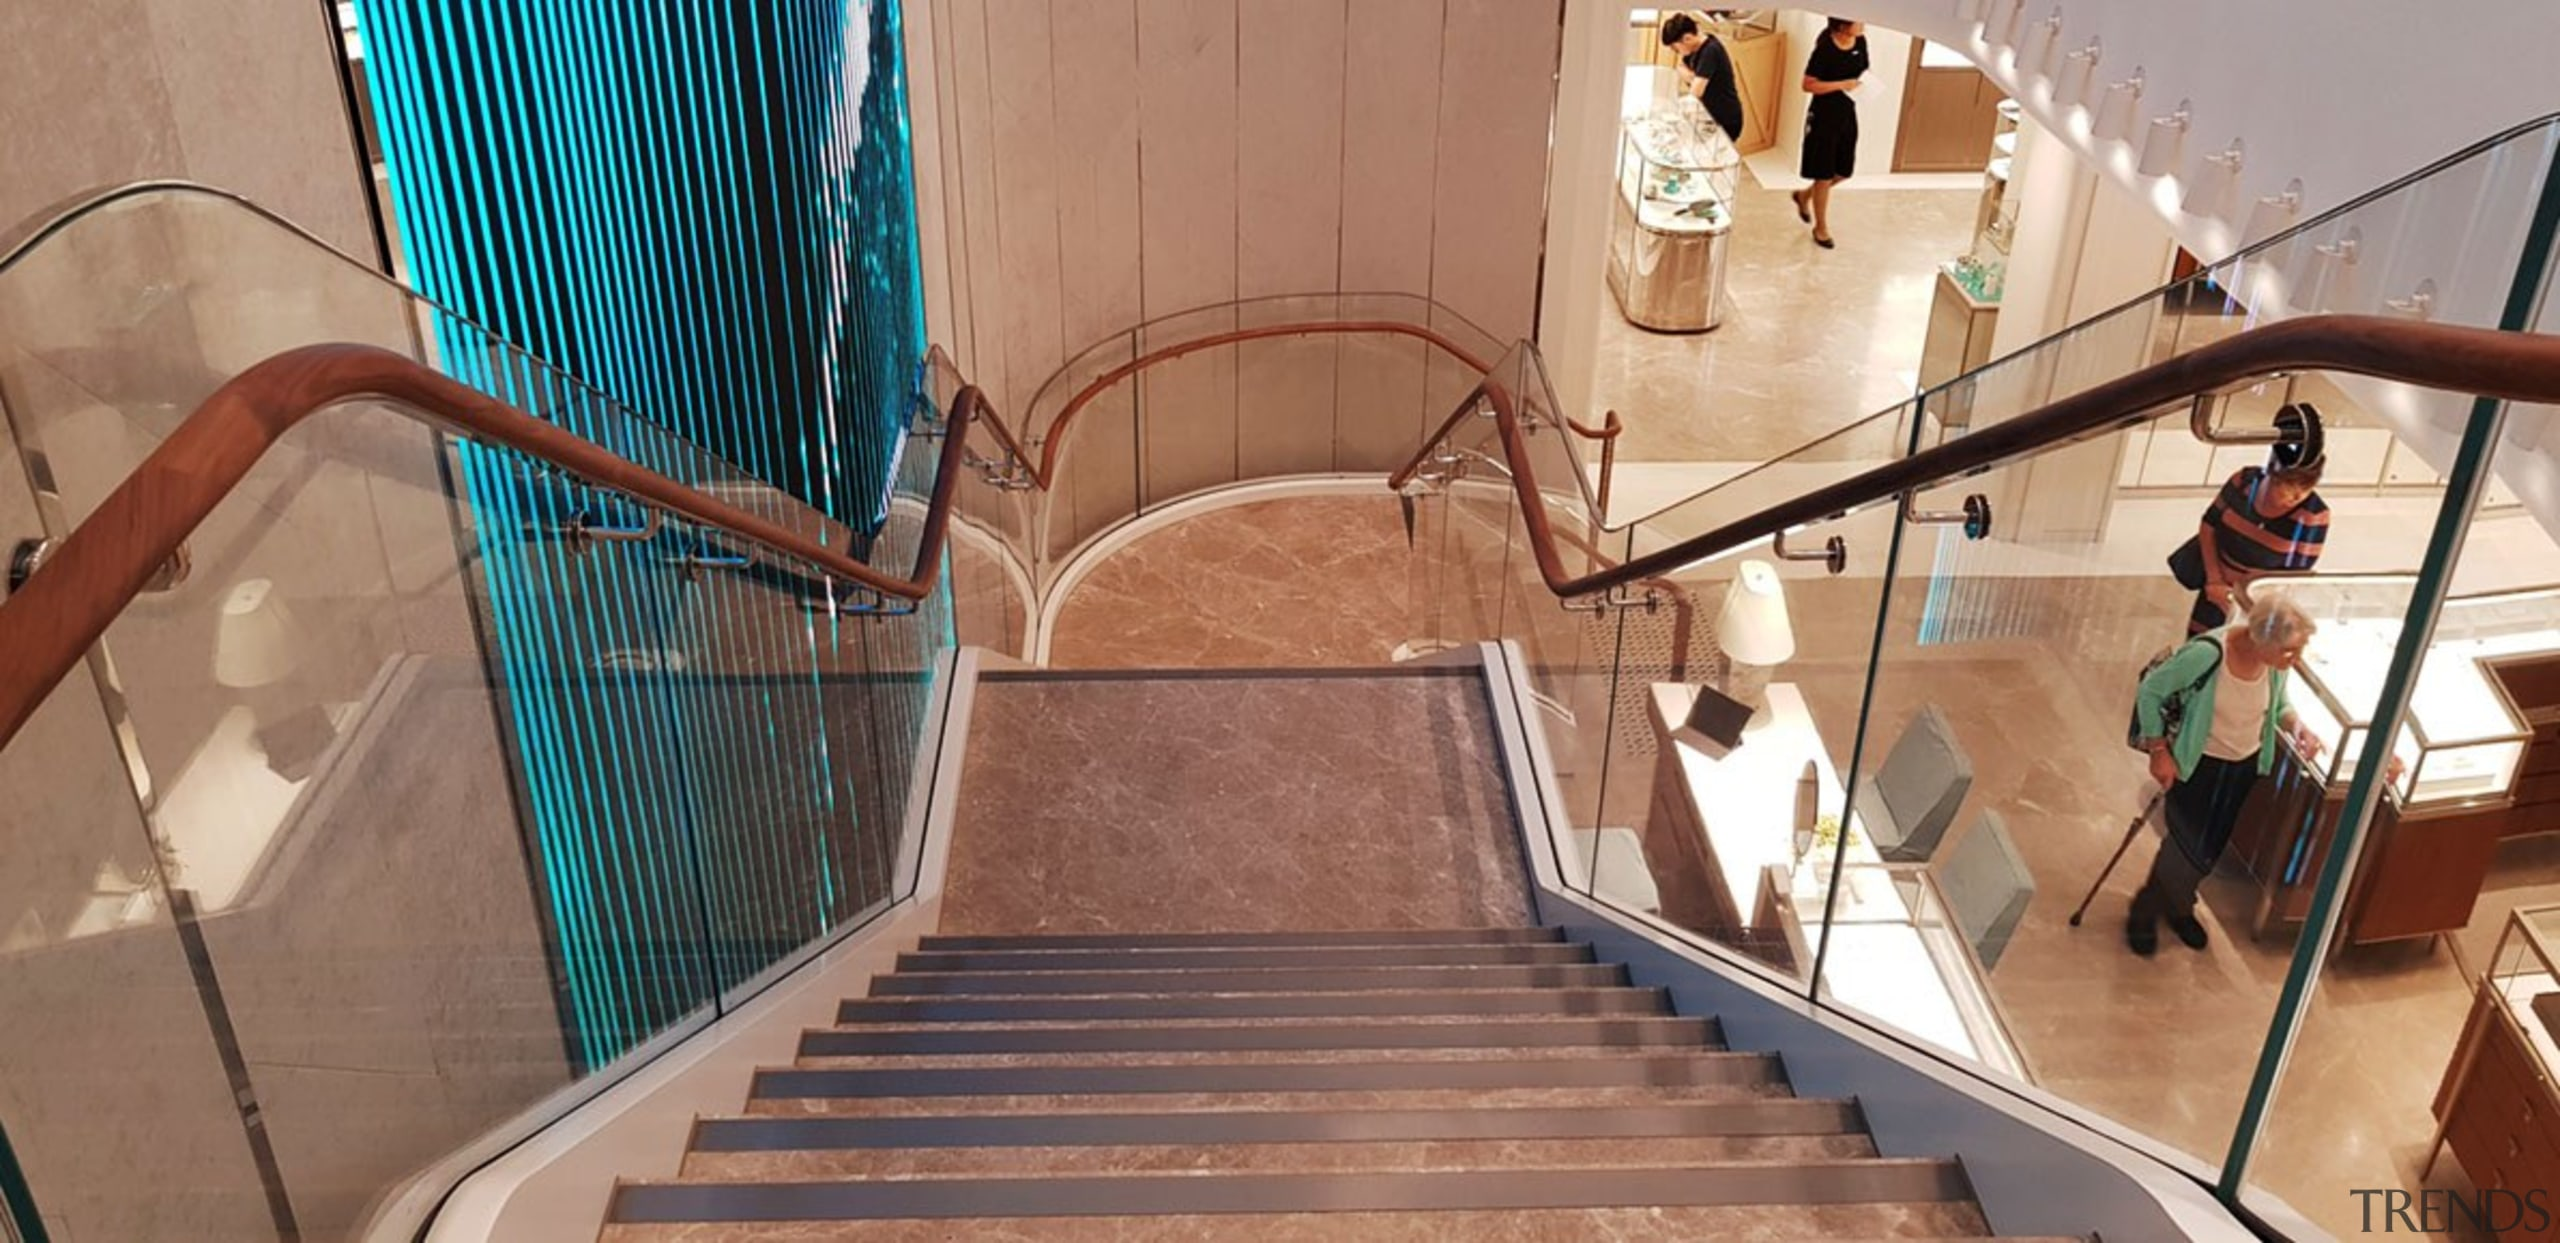 Tiffany Co Sydney 5 - architecture | building architecture, building, handrail, stairs, brown